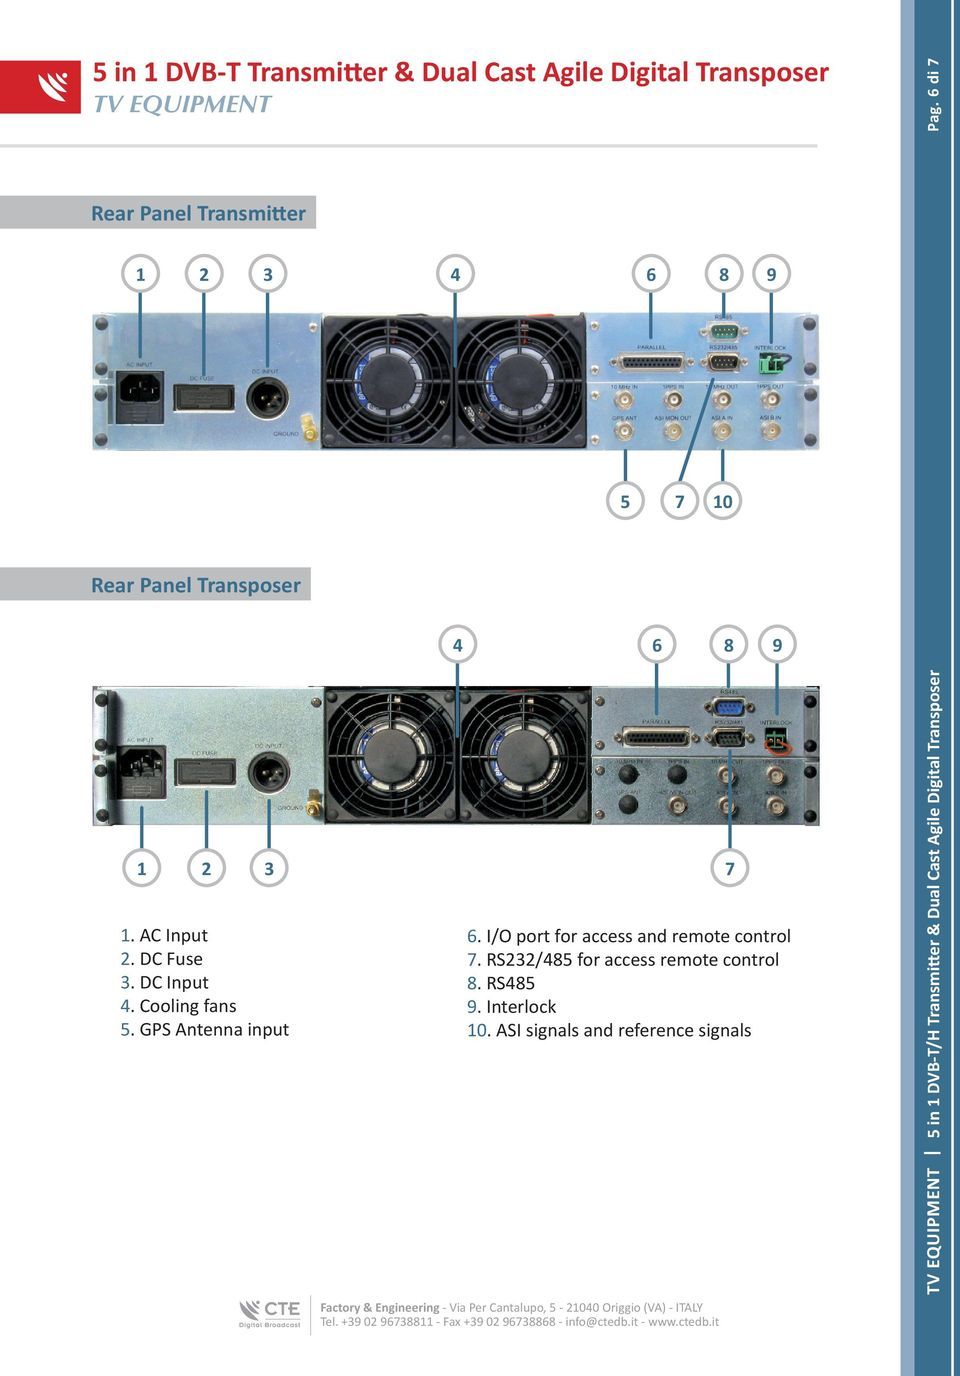 I/O port for access and remote control 7. RS232/485 for access remote control 8. RS485 9. Interlock 10.